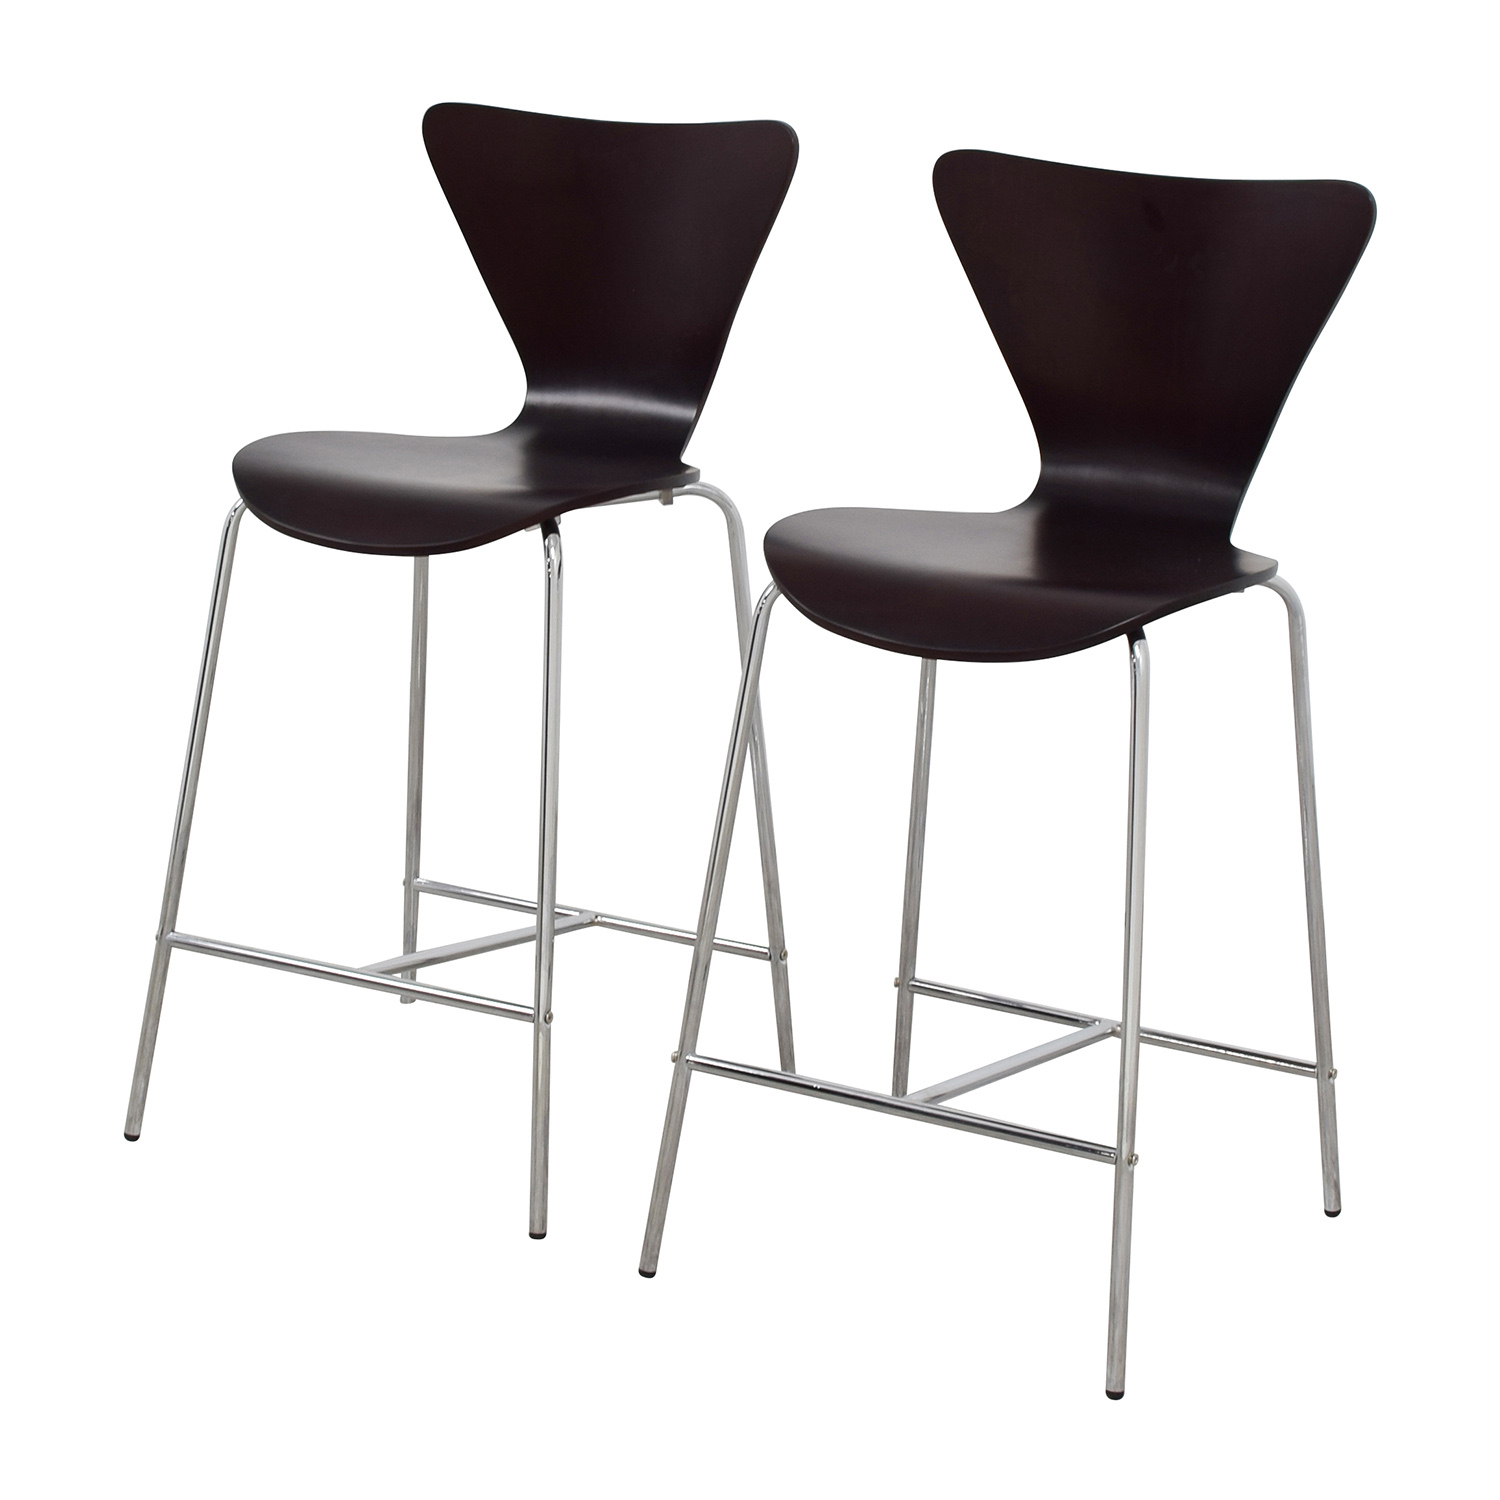 stool chair second hand chicco high chairs uk 70 off inmod tendy c counter wenge